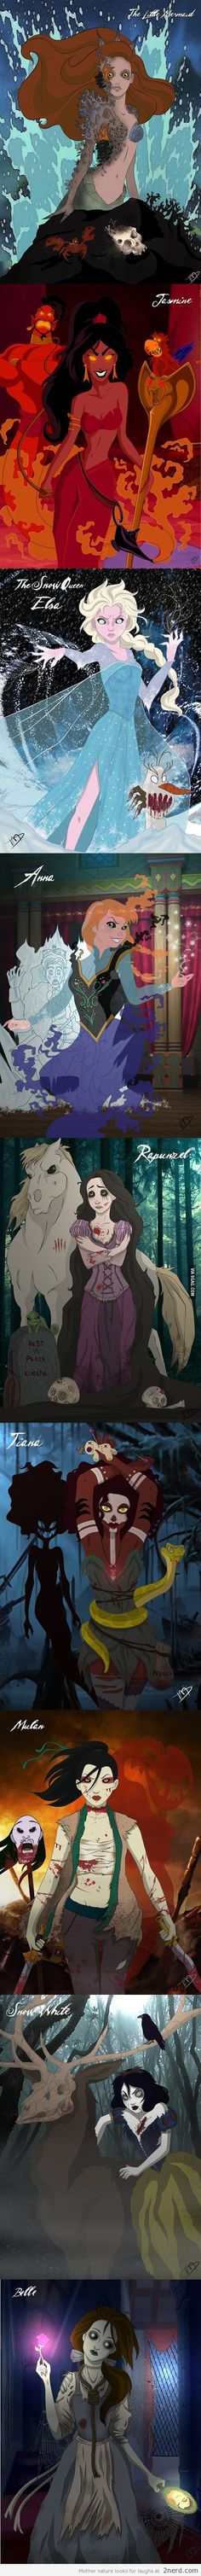 Funny pictures about Scary Zombie Disney Princesses. Oh, and cool pics about Scary Zombie Disney Princesses. Also, Scary Zombie Disney Princesses photos. Evil Disney Princesses, Disney Princess Zombie, Zombie Disney, Disney Characters, Twisted Princesses, Creepy Disney, Disney Horror, Walt Disney, Disney Love